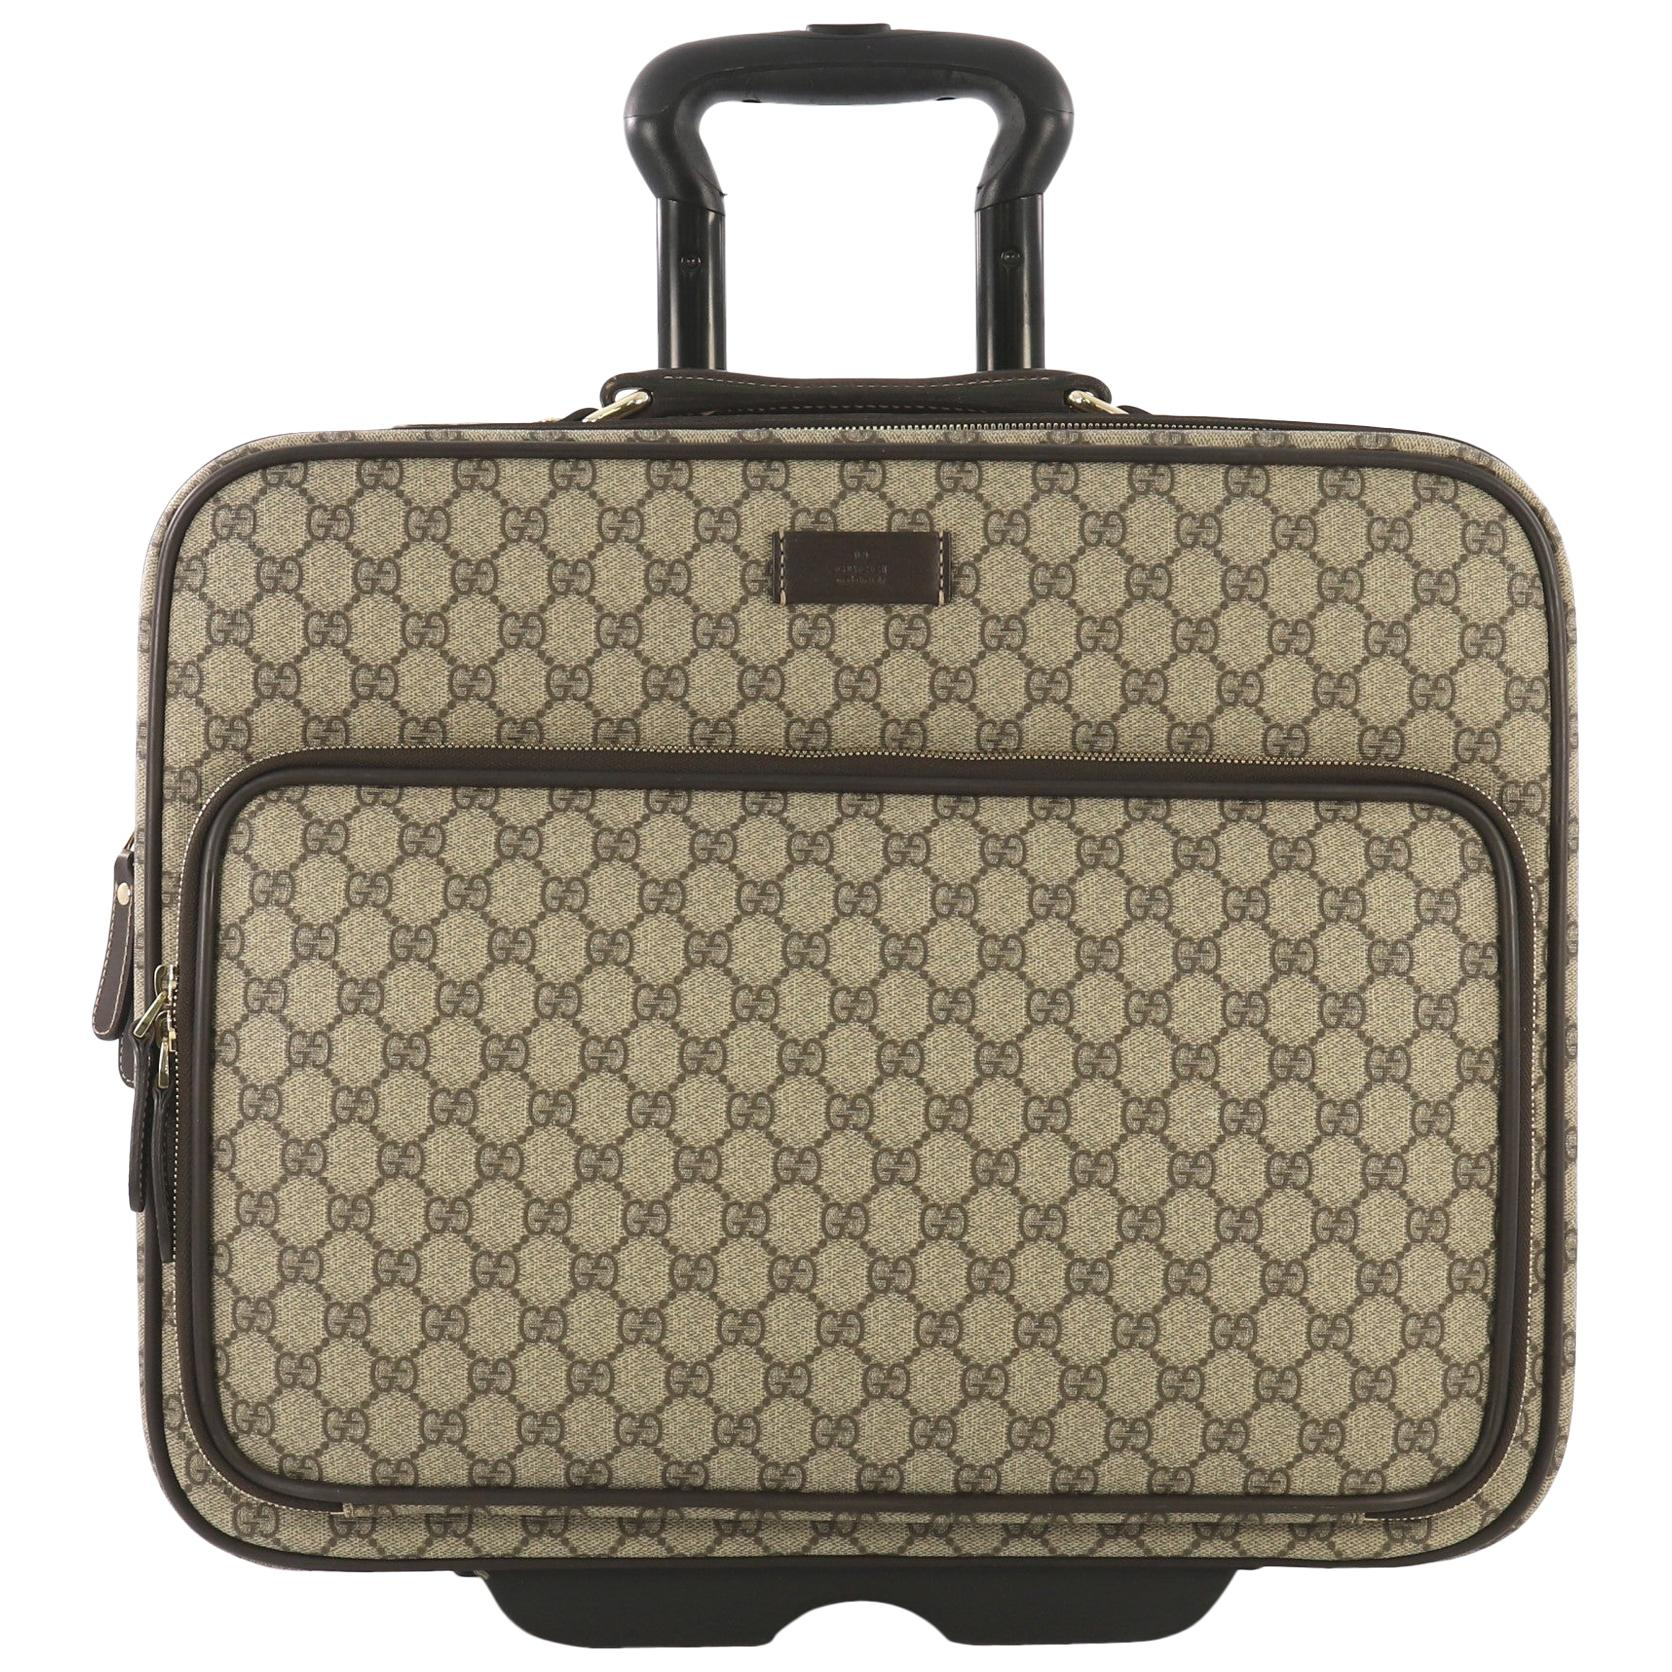 59c77385d Vintage Gucci Luggage and Travel Bags - 56 For Sale at 1stdibs